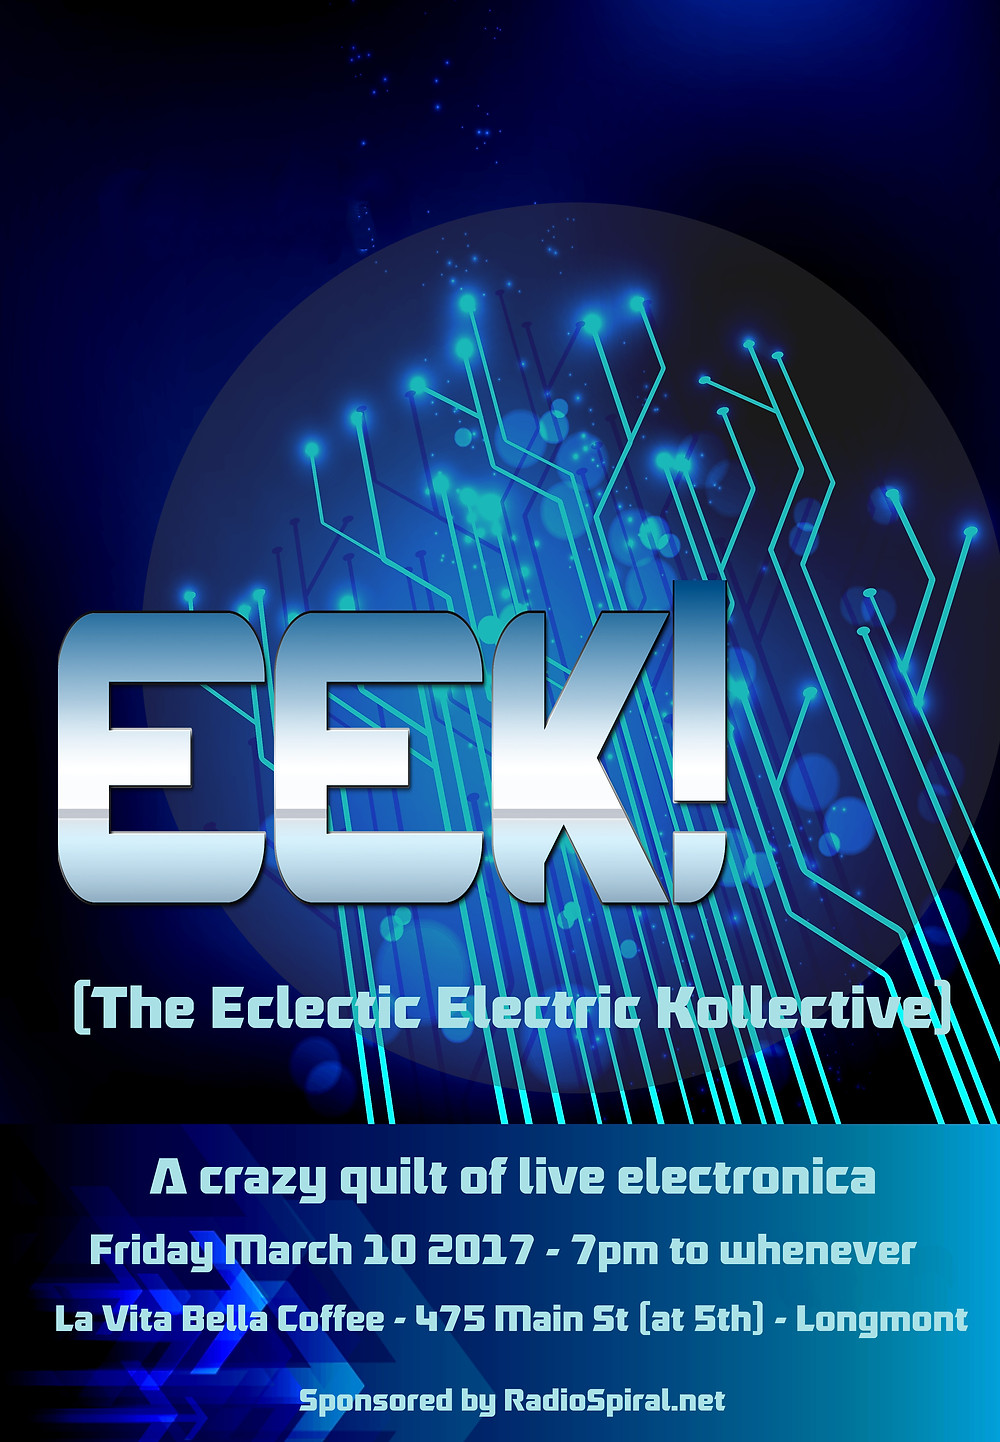 The Return of EEK! (a crazy quilt of improvised electronica) March 10 2017 at 7PM, La Vita Bella Coffee, 475 Main St, Longmont CO